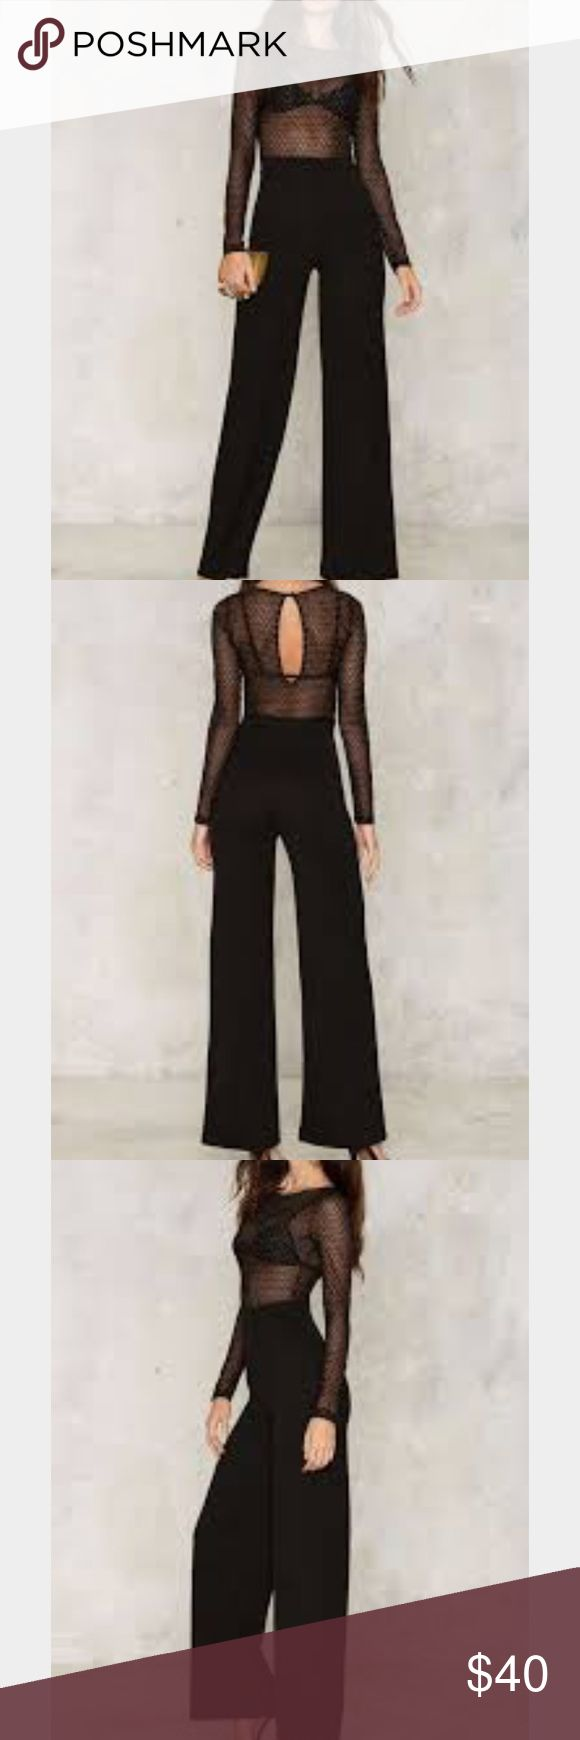 Kool Thang Sheer Black Jumpsuit Nasty Gal This is the perfect jumper for a night out on the town. I wore it once. It is sheer up top and black pants at the bottom Nasty Gal Pants Jumpsuits & Rompers